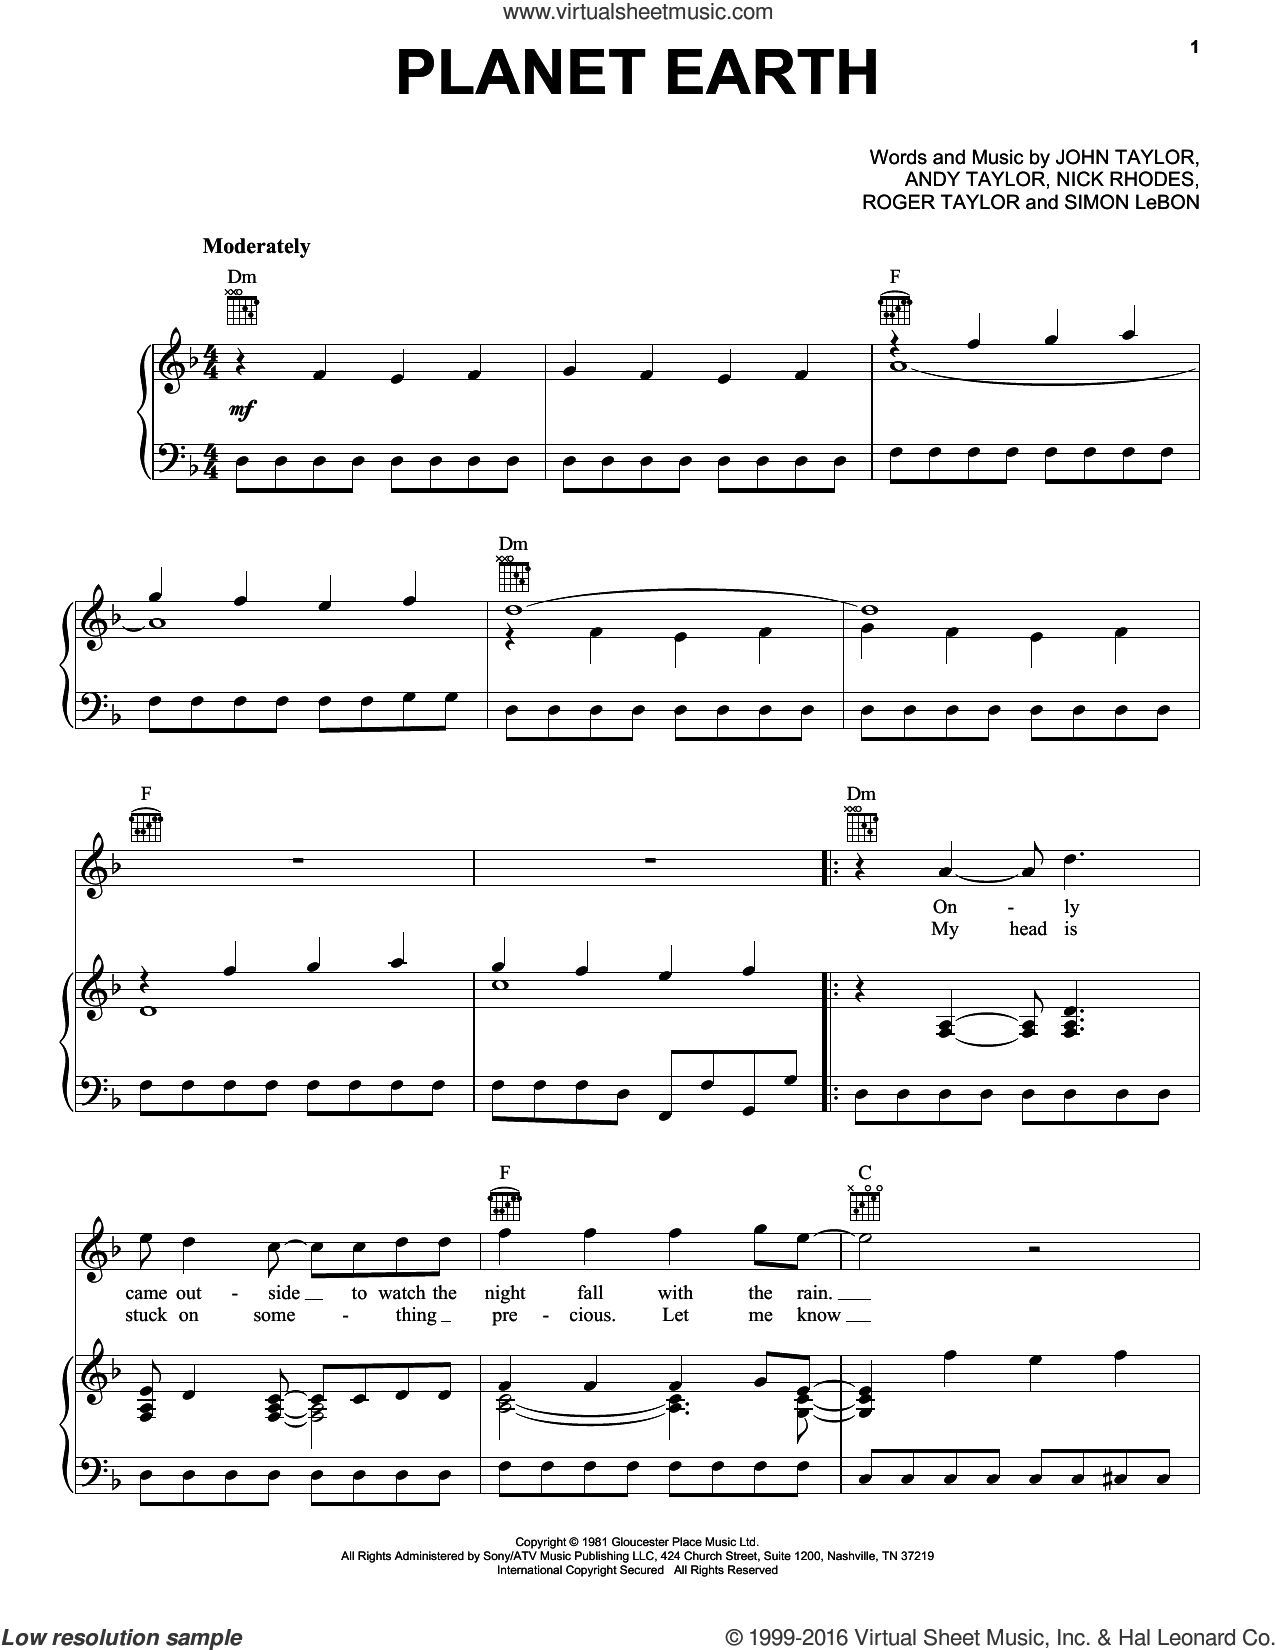 Planet Earth sheet music for voice, piano or guitar by Duran Duran, Andrew Taylor, John Taylor, Nick Rhodes, Roger Taylor and Simon LeBon, intermediate